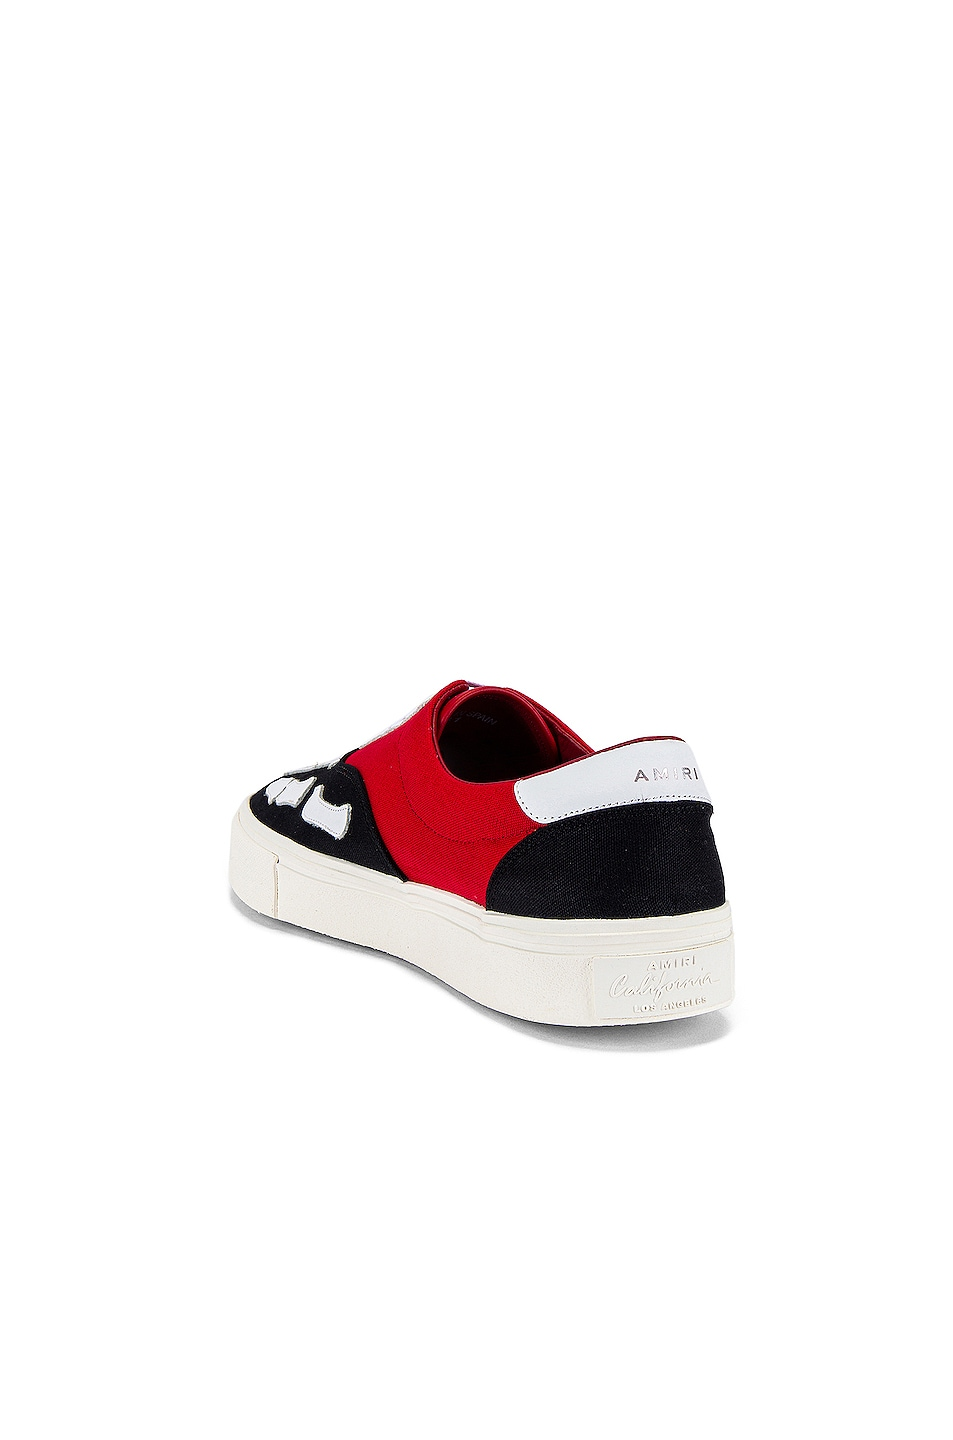 Image 3 of Amiri Skel Toe Lace Up Sneaker in Black & Red & White